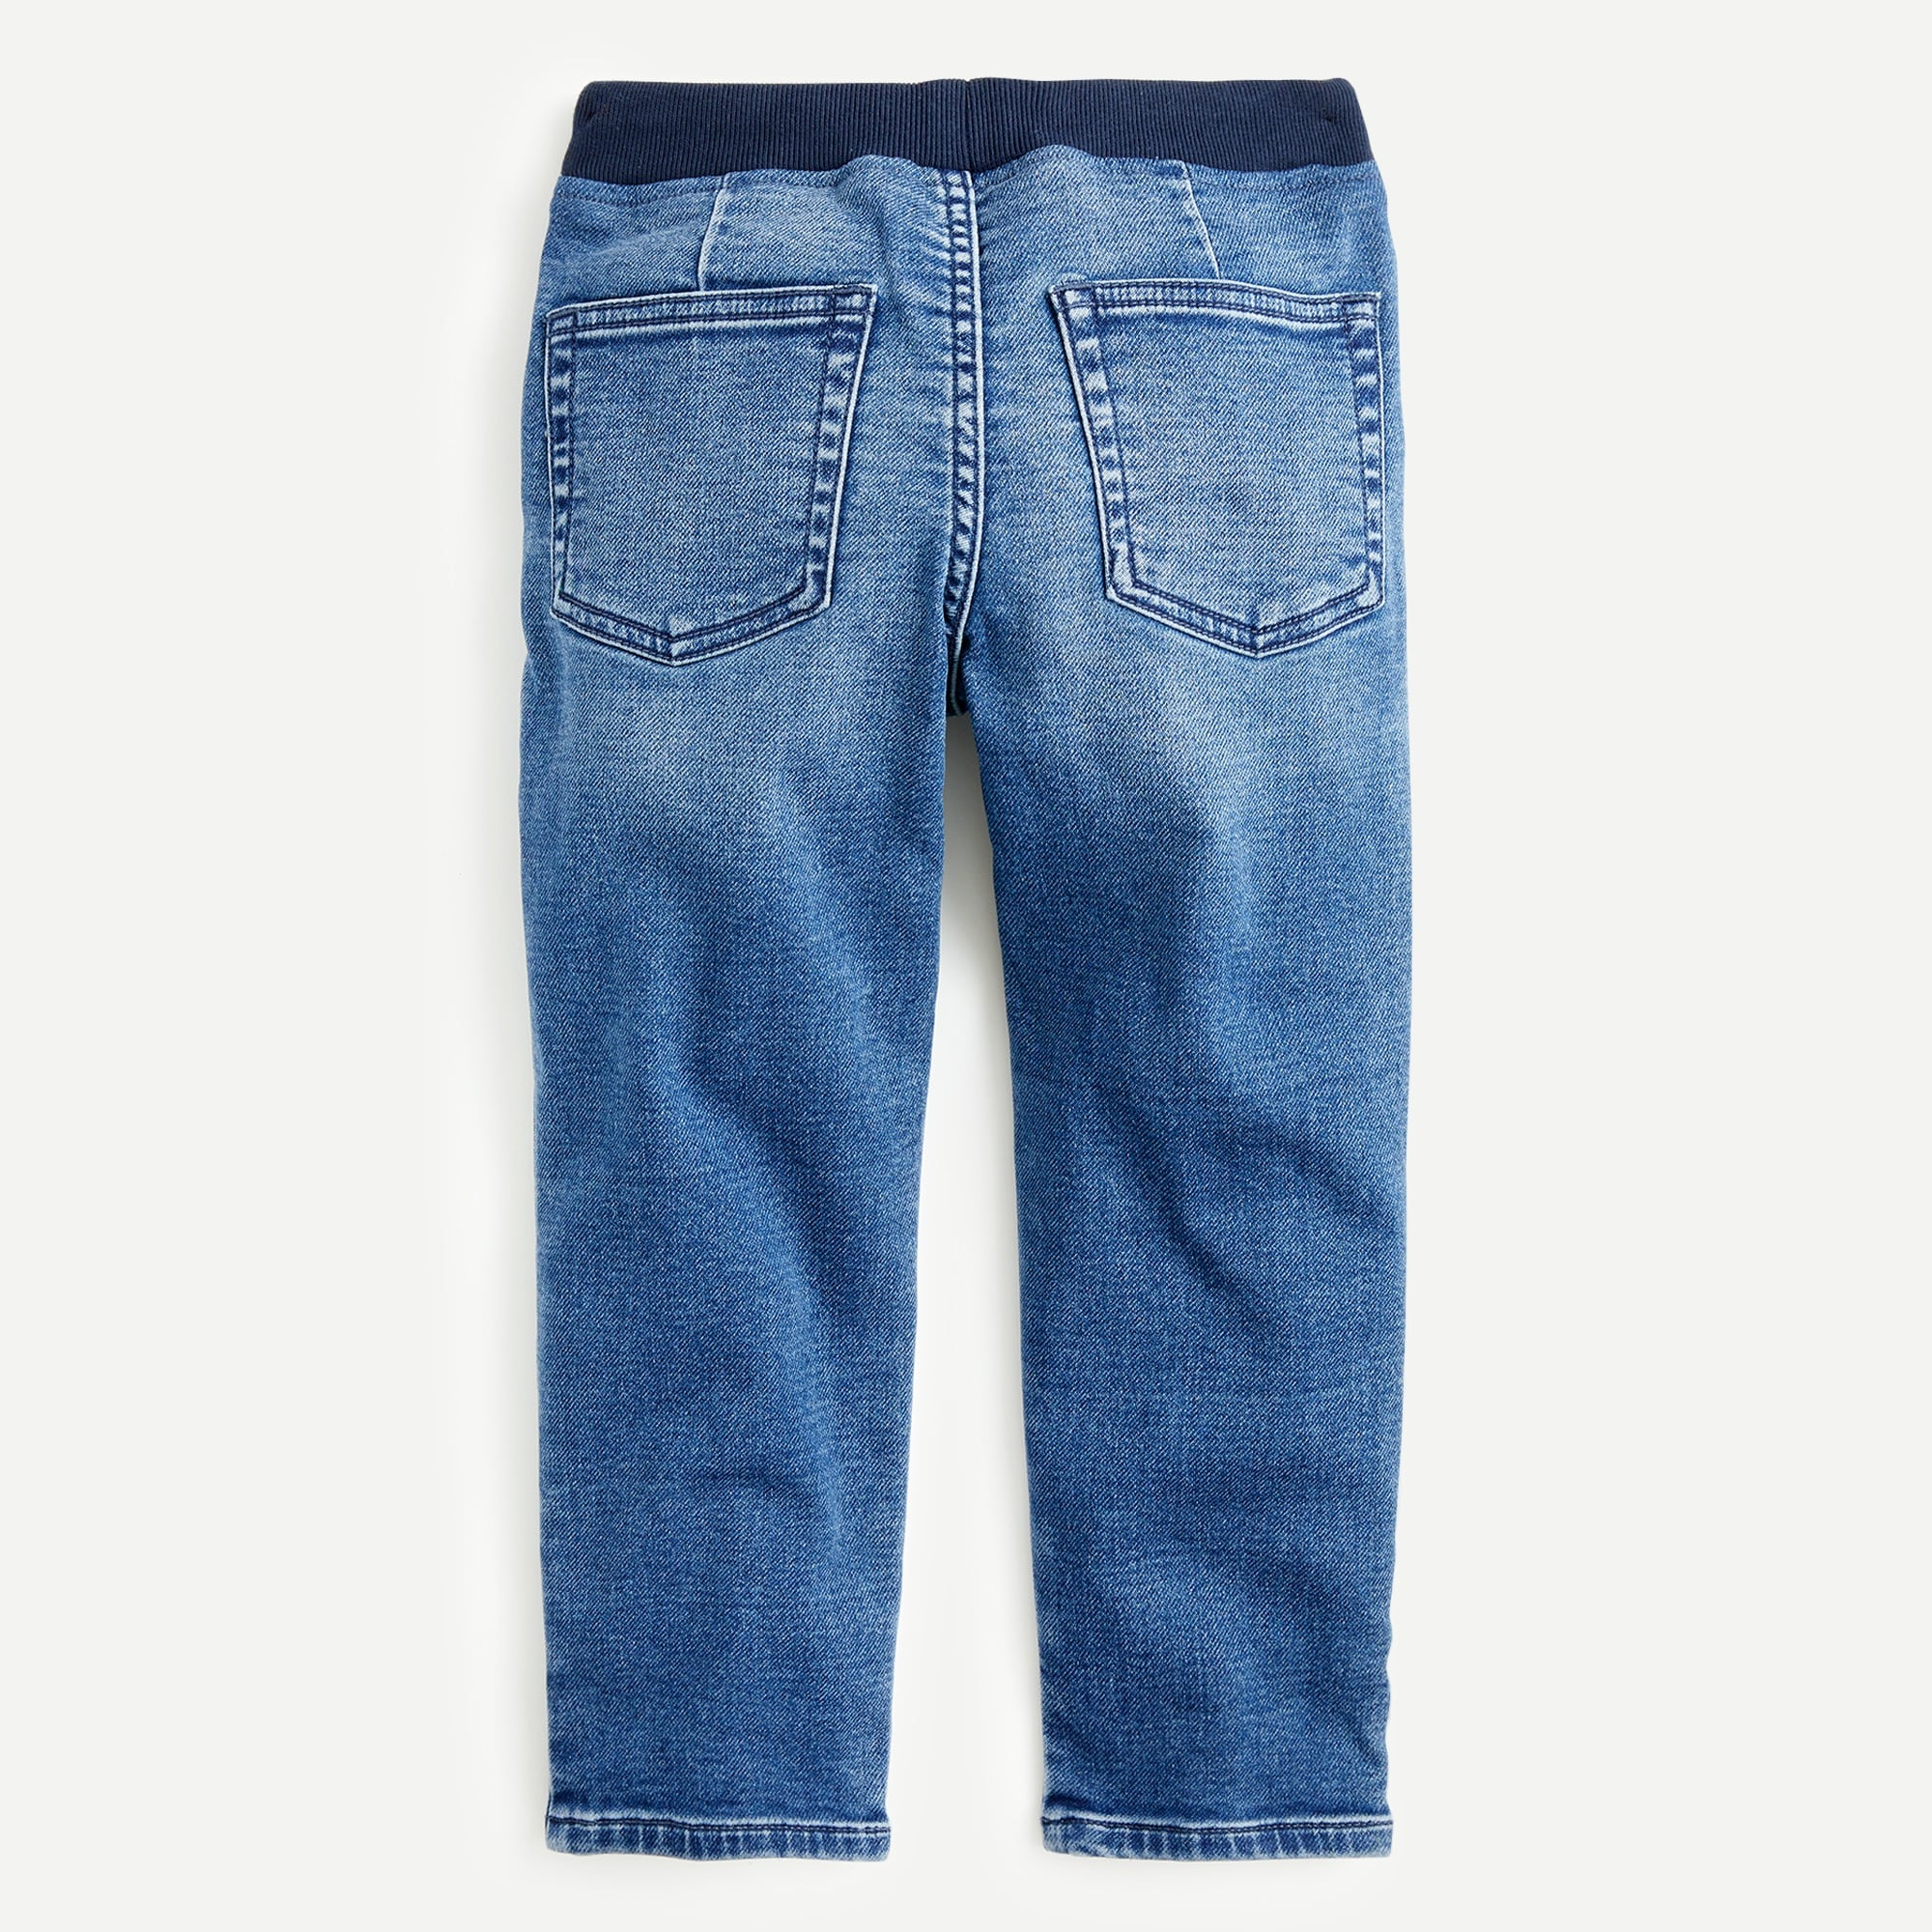 Boys' homeroom wash runaround jean in pull-on fit